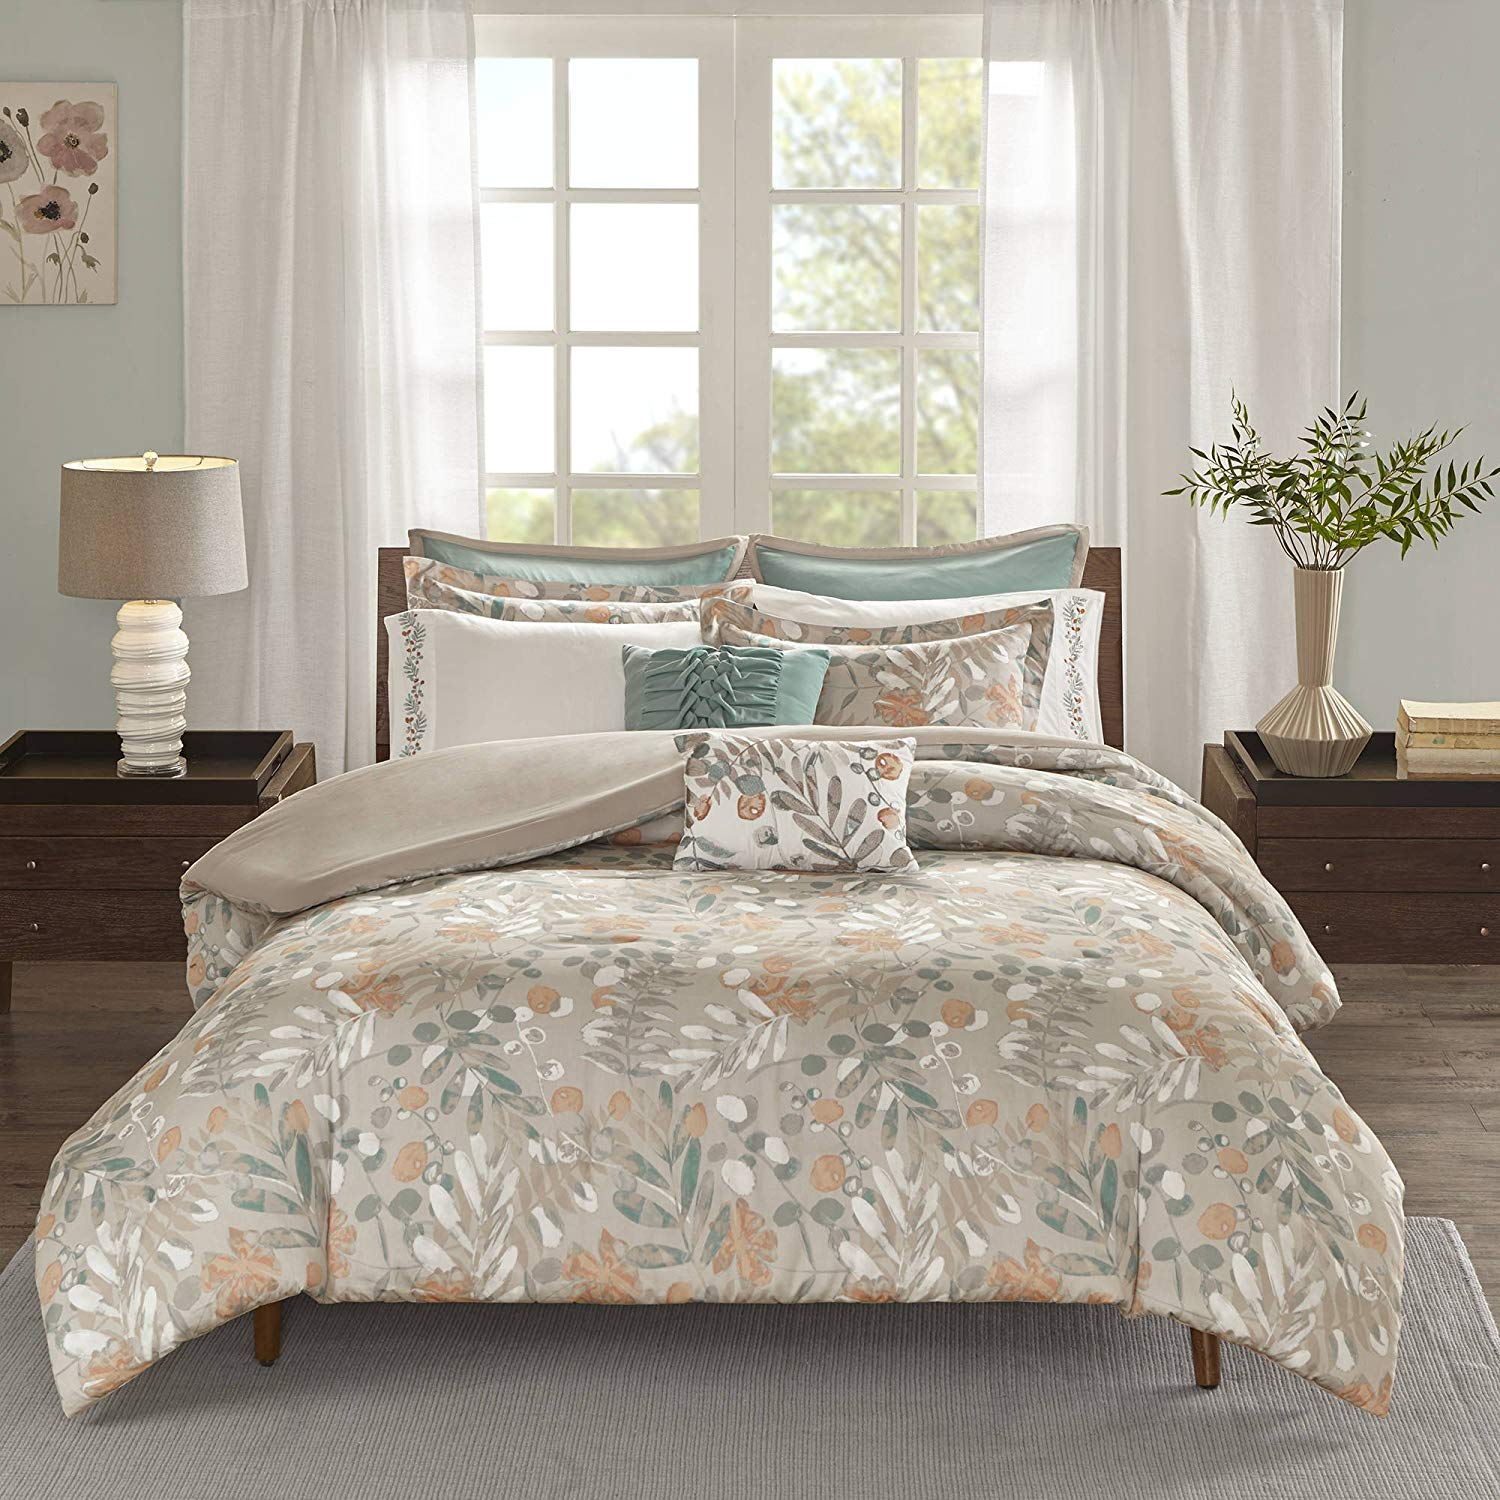 AD 9 Piece Orange Tan Floral King/Cal King Duvet Cover Set, Nature Fall Themed Bedding Flower Leaf Pattern Chic Botanical Print, Spice Hue Motif Outdoors Forest Cabin Lodge House, Sateen Cotton